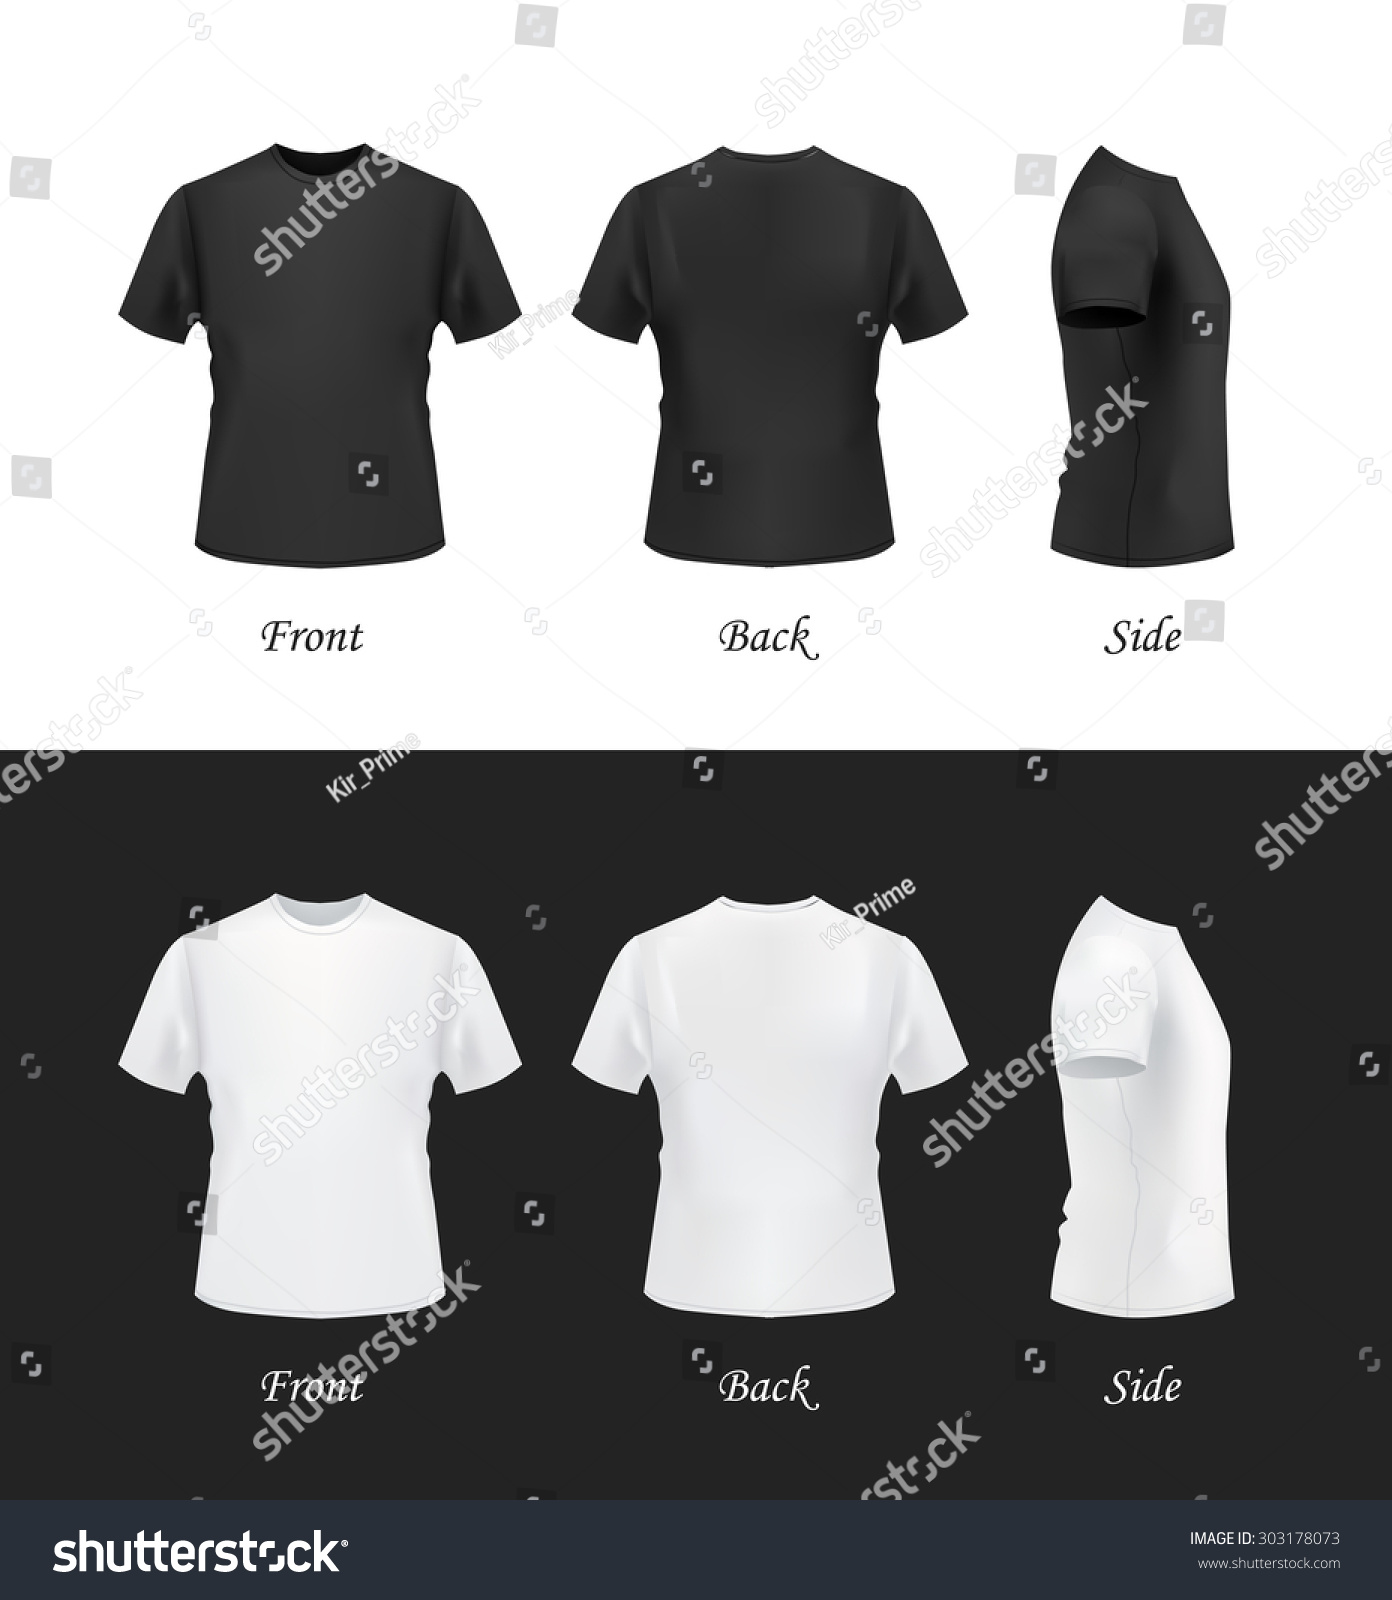 White t shirt eps - T Shirt Template Front Side Back View Black And White T